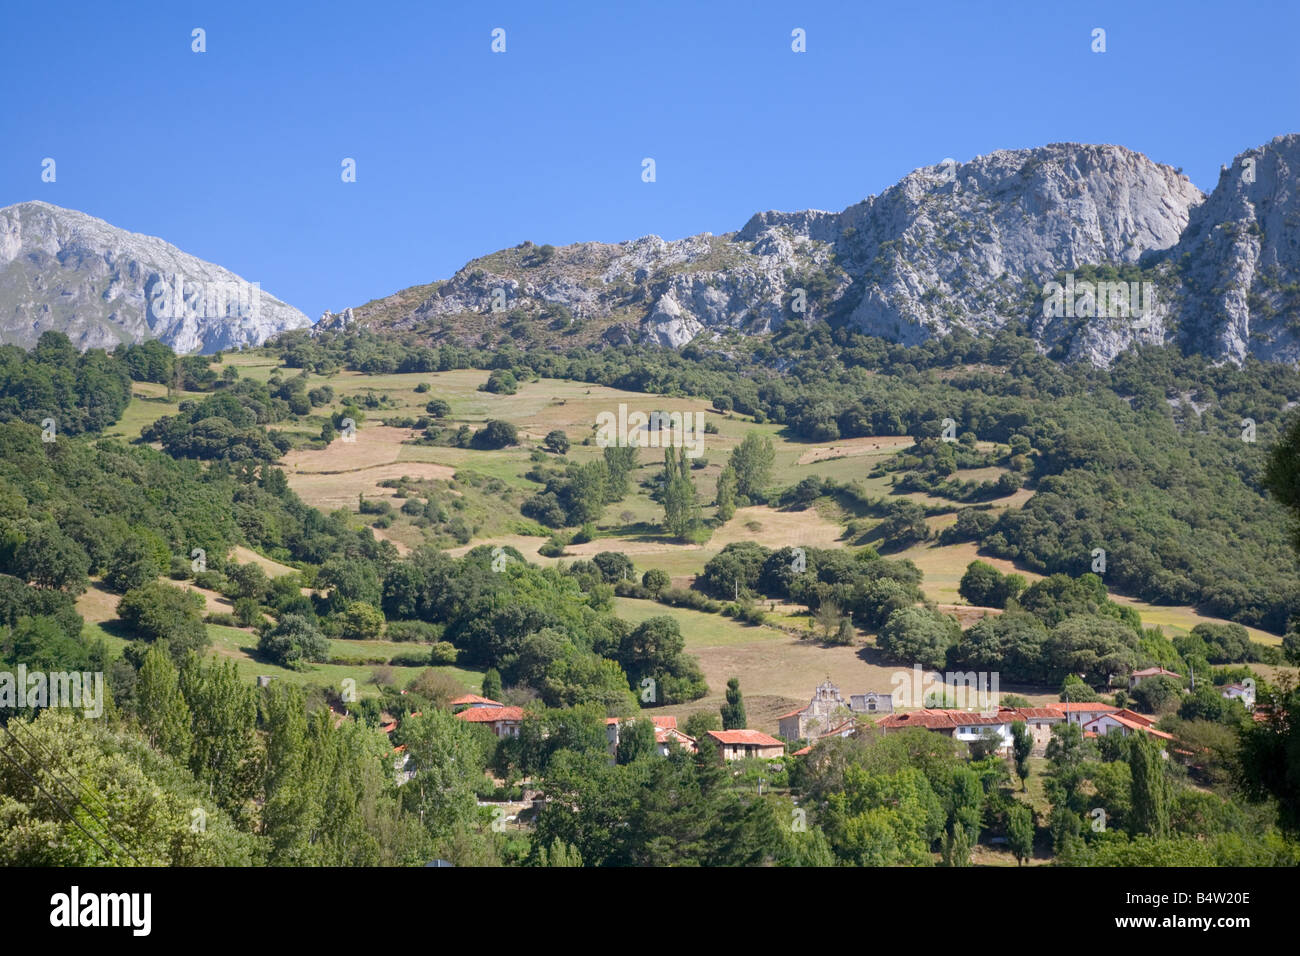 Picos de Europa mountains - Stock Image